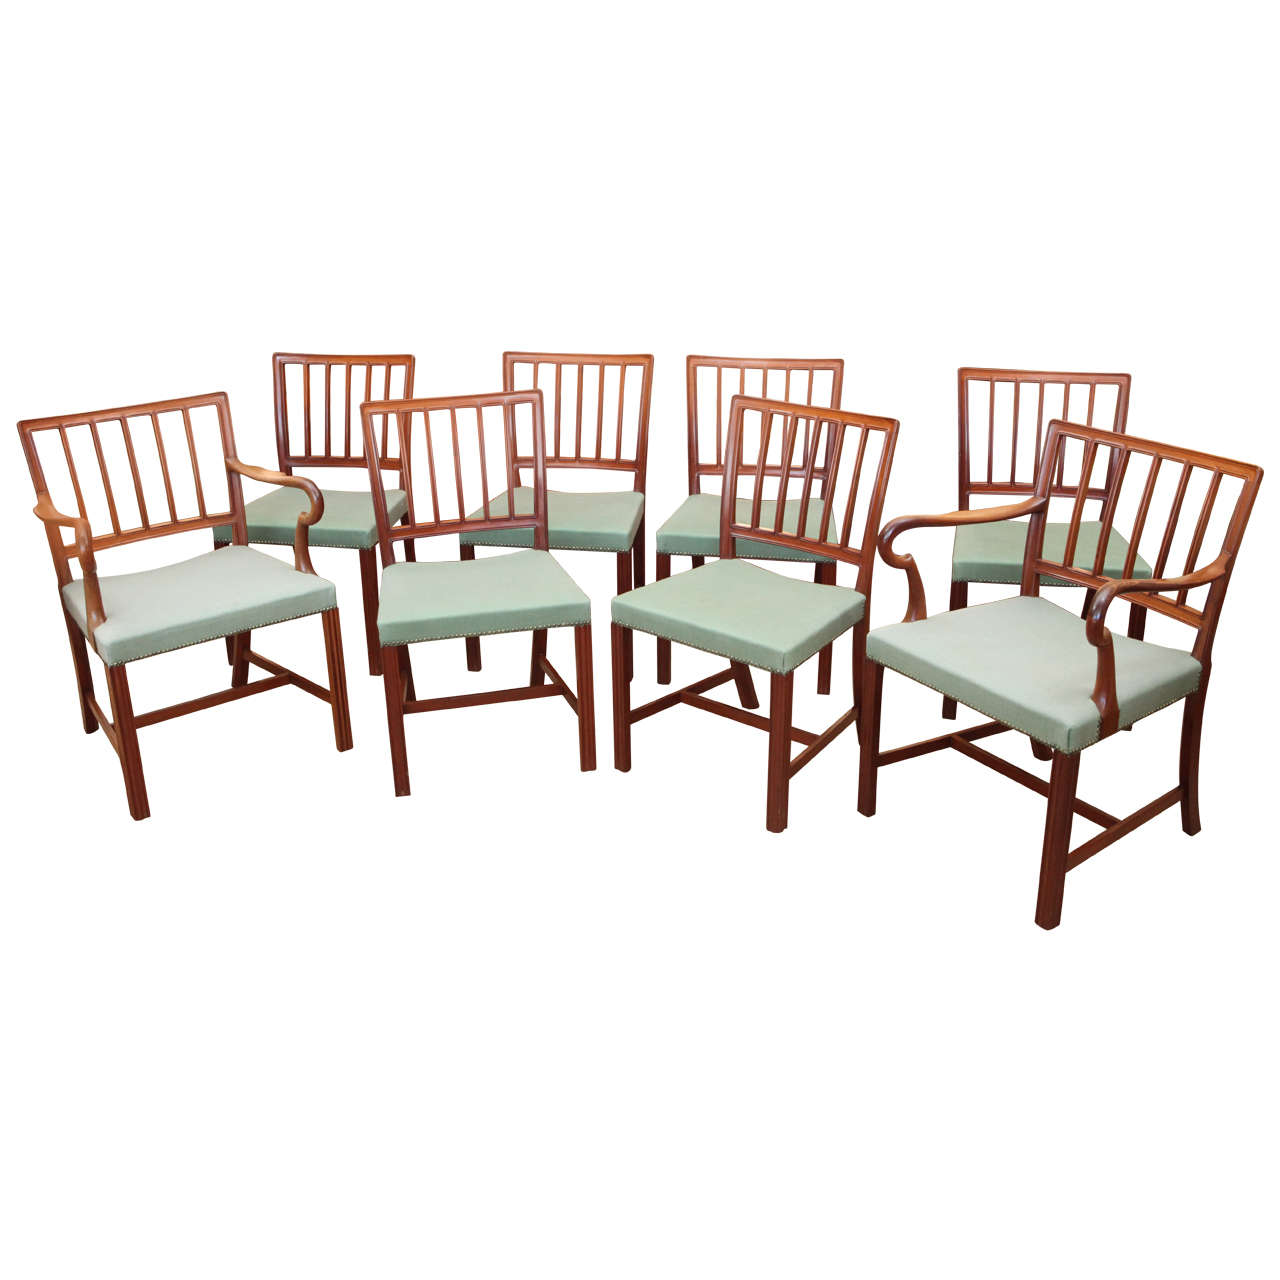 Jacob Kj 230 R Set Of Eight Dining Chairs At 1stdibs